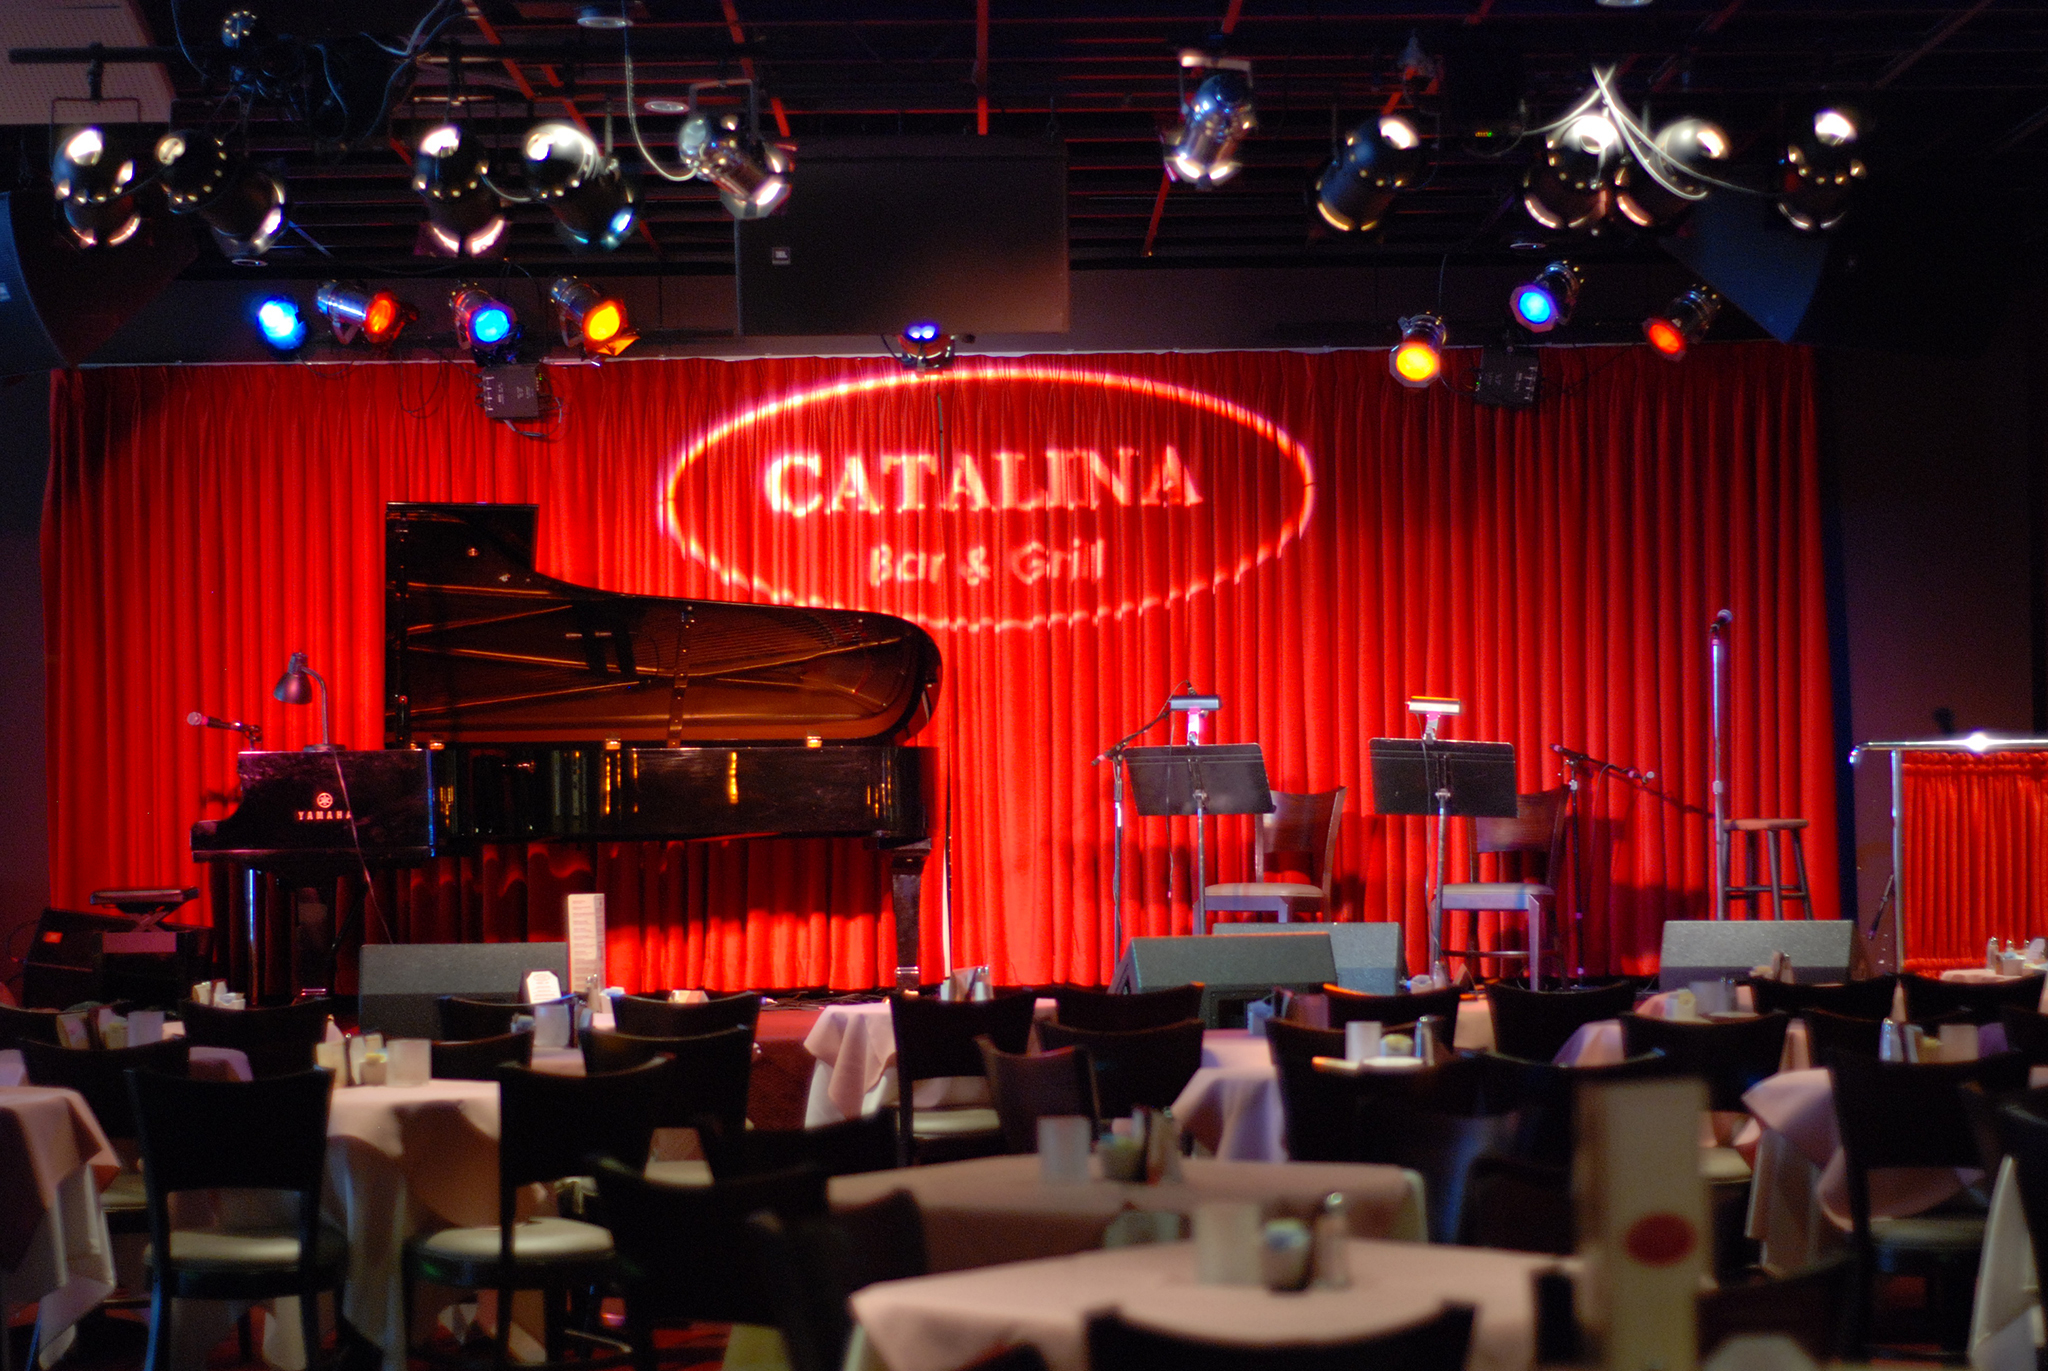 Catalina Bar & Grill | Restaurants In Hollywood, Los Angeles inside Catalina Bar And Grill Calendar